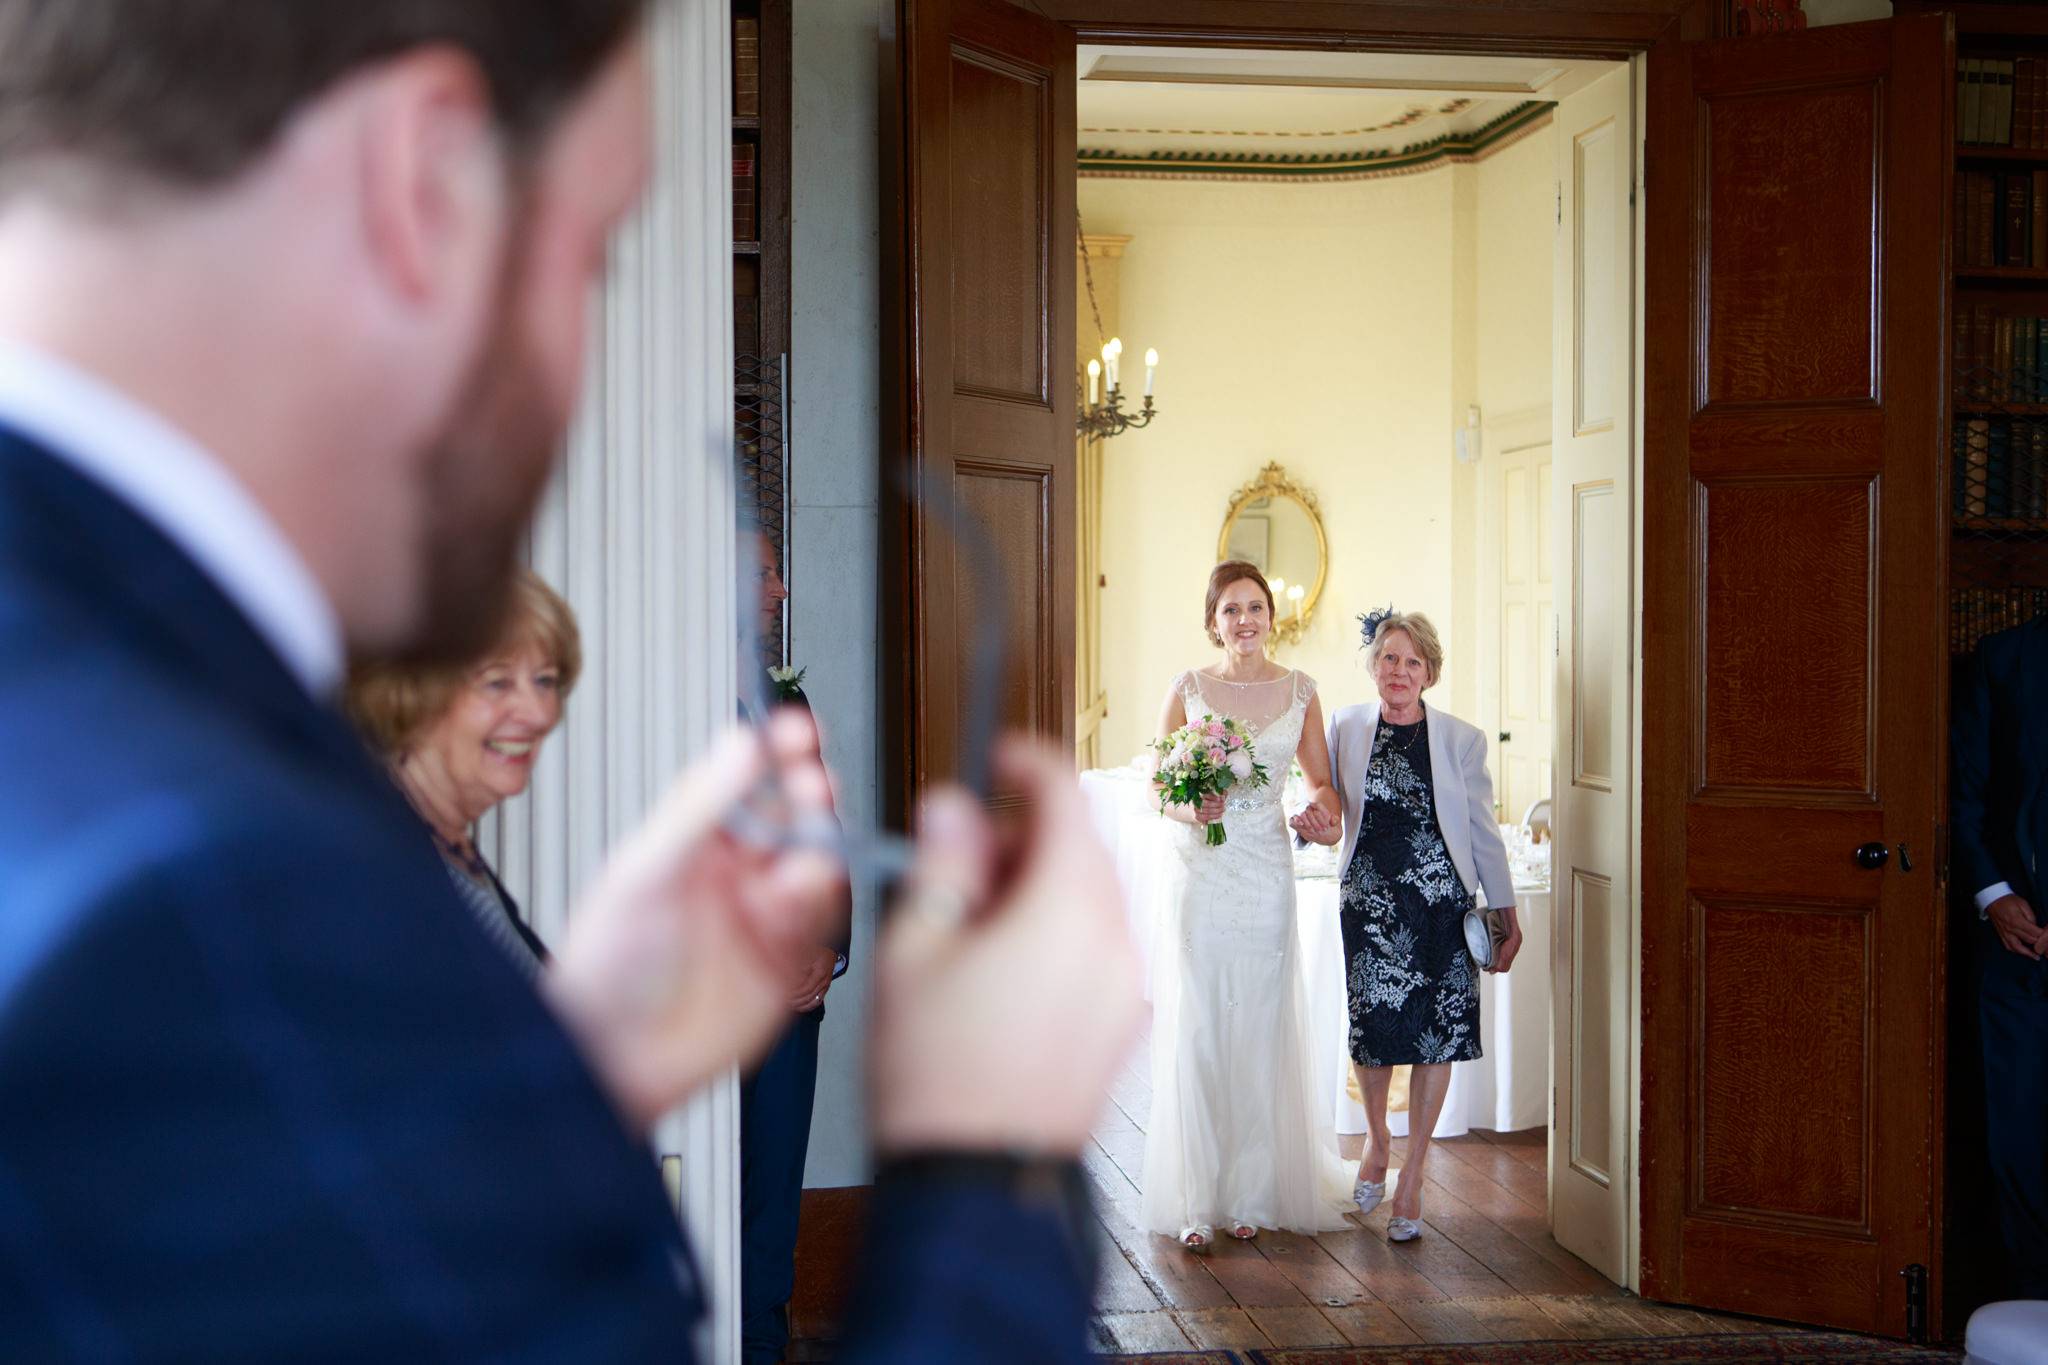 Escot House Wedding photographer 011_.jpg